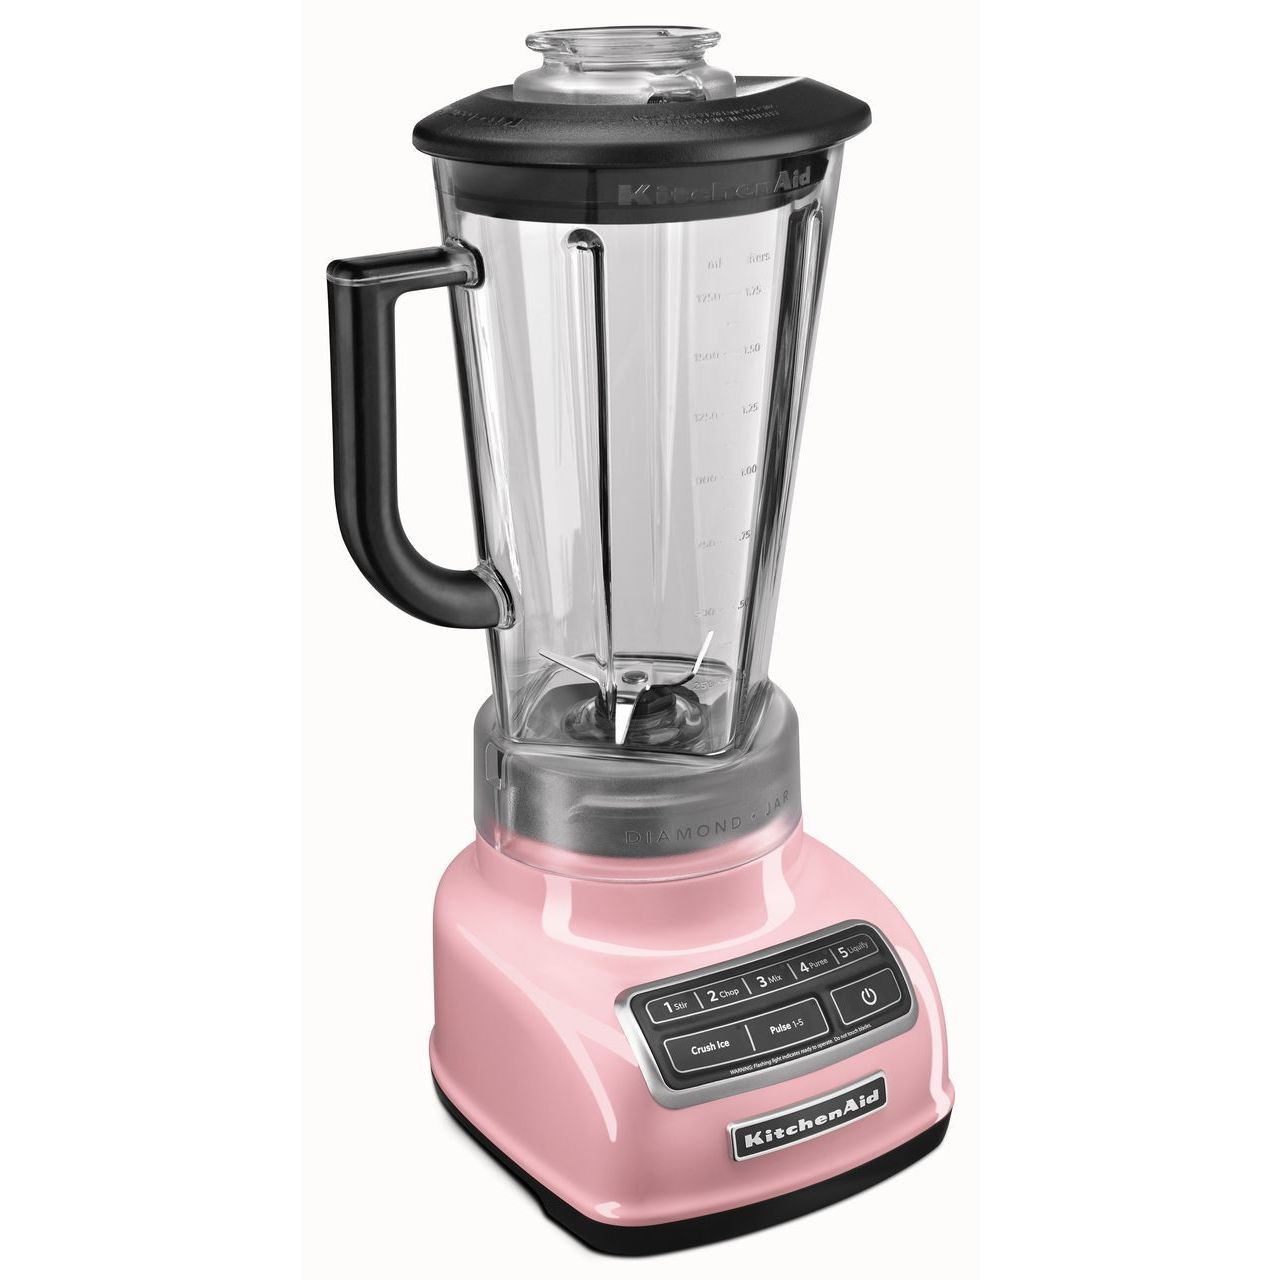 Shop KitchenAid KSB1575 5-Sd Diamond Blender - Free Shipping ... on vortex blender, breville bbl605xl hemisphere control blender, margaritaville blender, 25 diamond blender, nutribullet ninja blender, best smoothie blender, black diamond blender, vitamix 5200 blender, orange juice blender, cuisinart diamond blender, red blender, blendtec blender, kitchen blender, cuisinart hand blender, cobalt blue vitamix blender, color blender, oster blender, kenwood kmix hand blender,